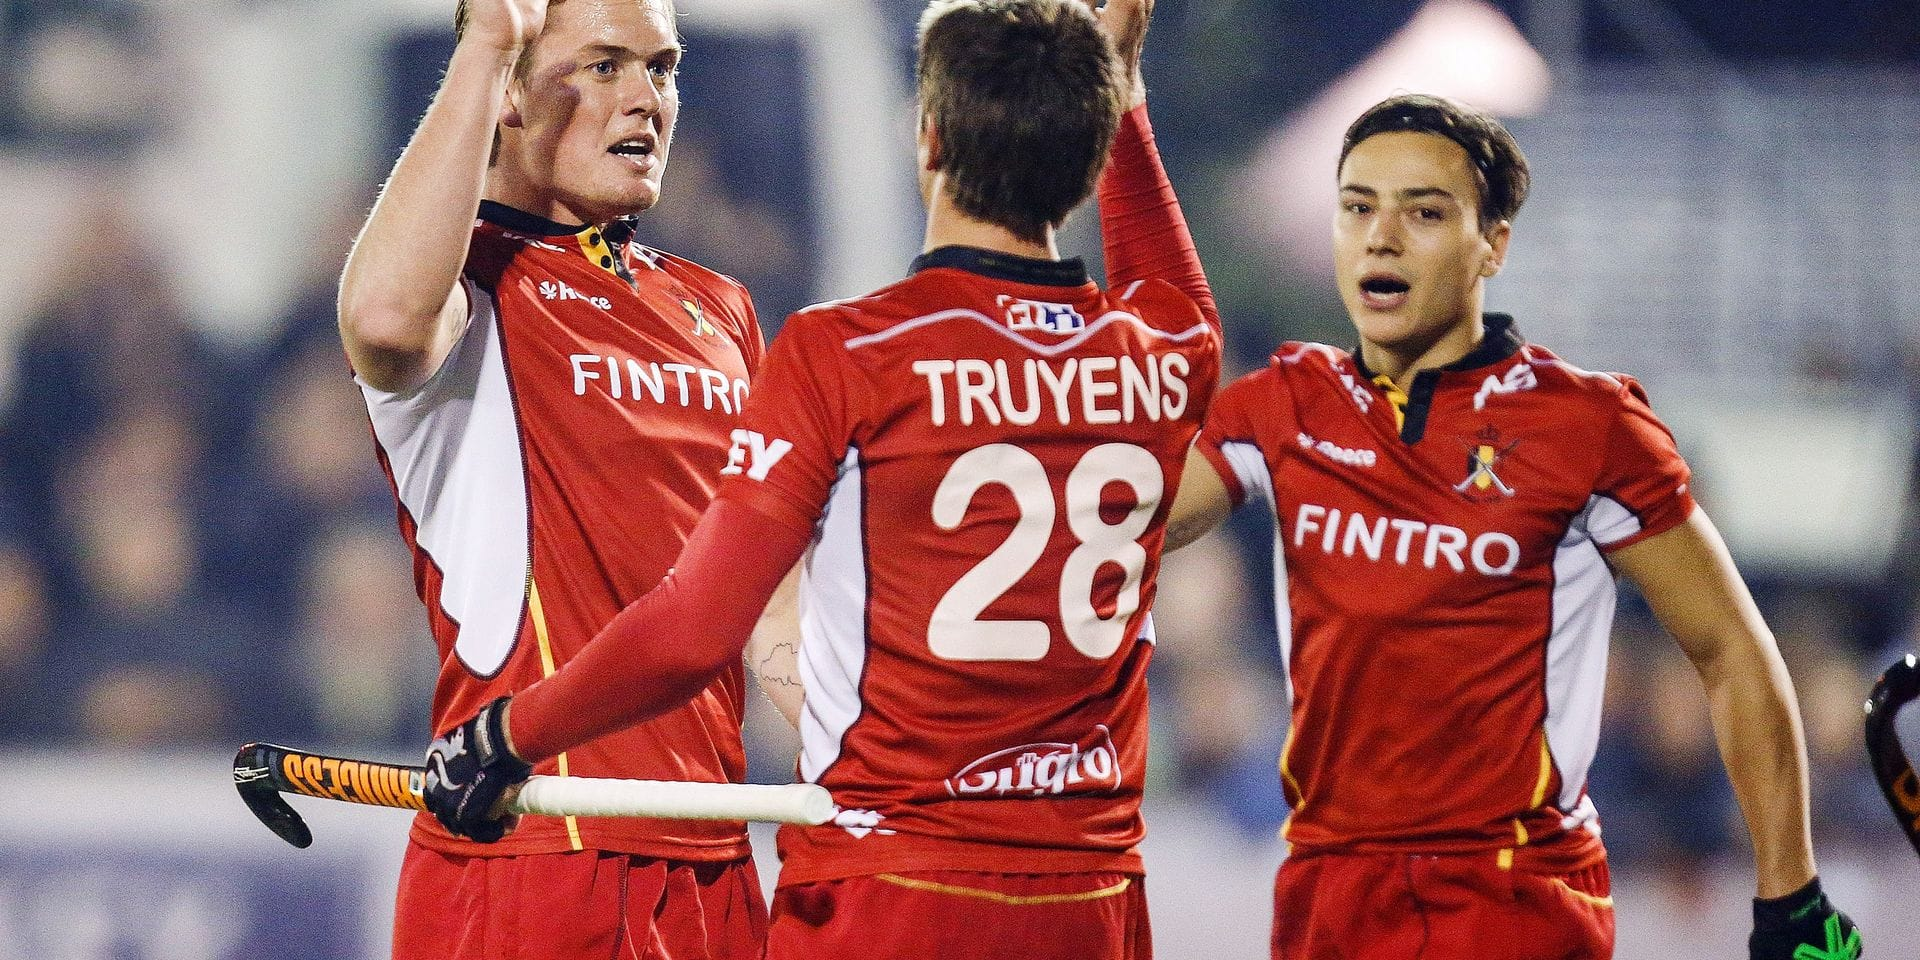 Red lions' Tom Boon, Red lions' Jerome Truyens and Red lions' Thomas Briels celebrate after scoring during a friendly game between Belgian Red Lions and Argentina, in Uccle sport, Wednesday 26 October 2016, in Brussels. The game is a remake of Rio olympic final, won by Argentina. 9200 seats where sold for the game, a reccord for hockey in Belgium. BELGA PHOTO THIERRY ROGE